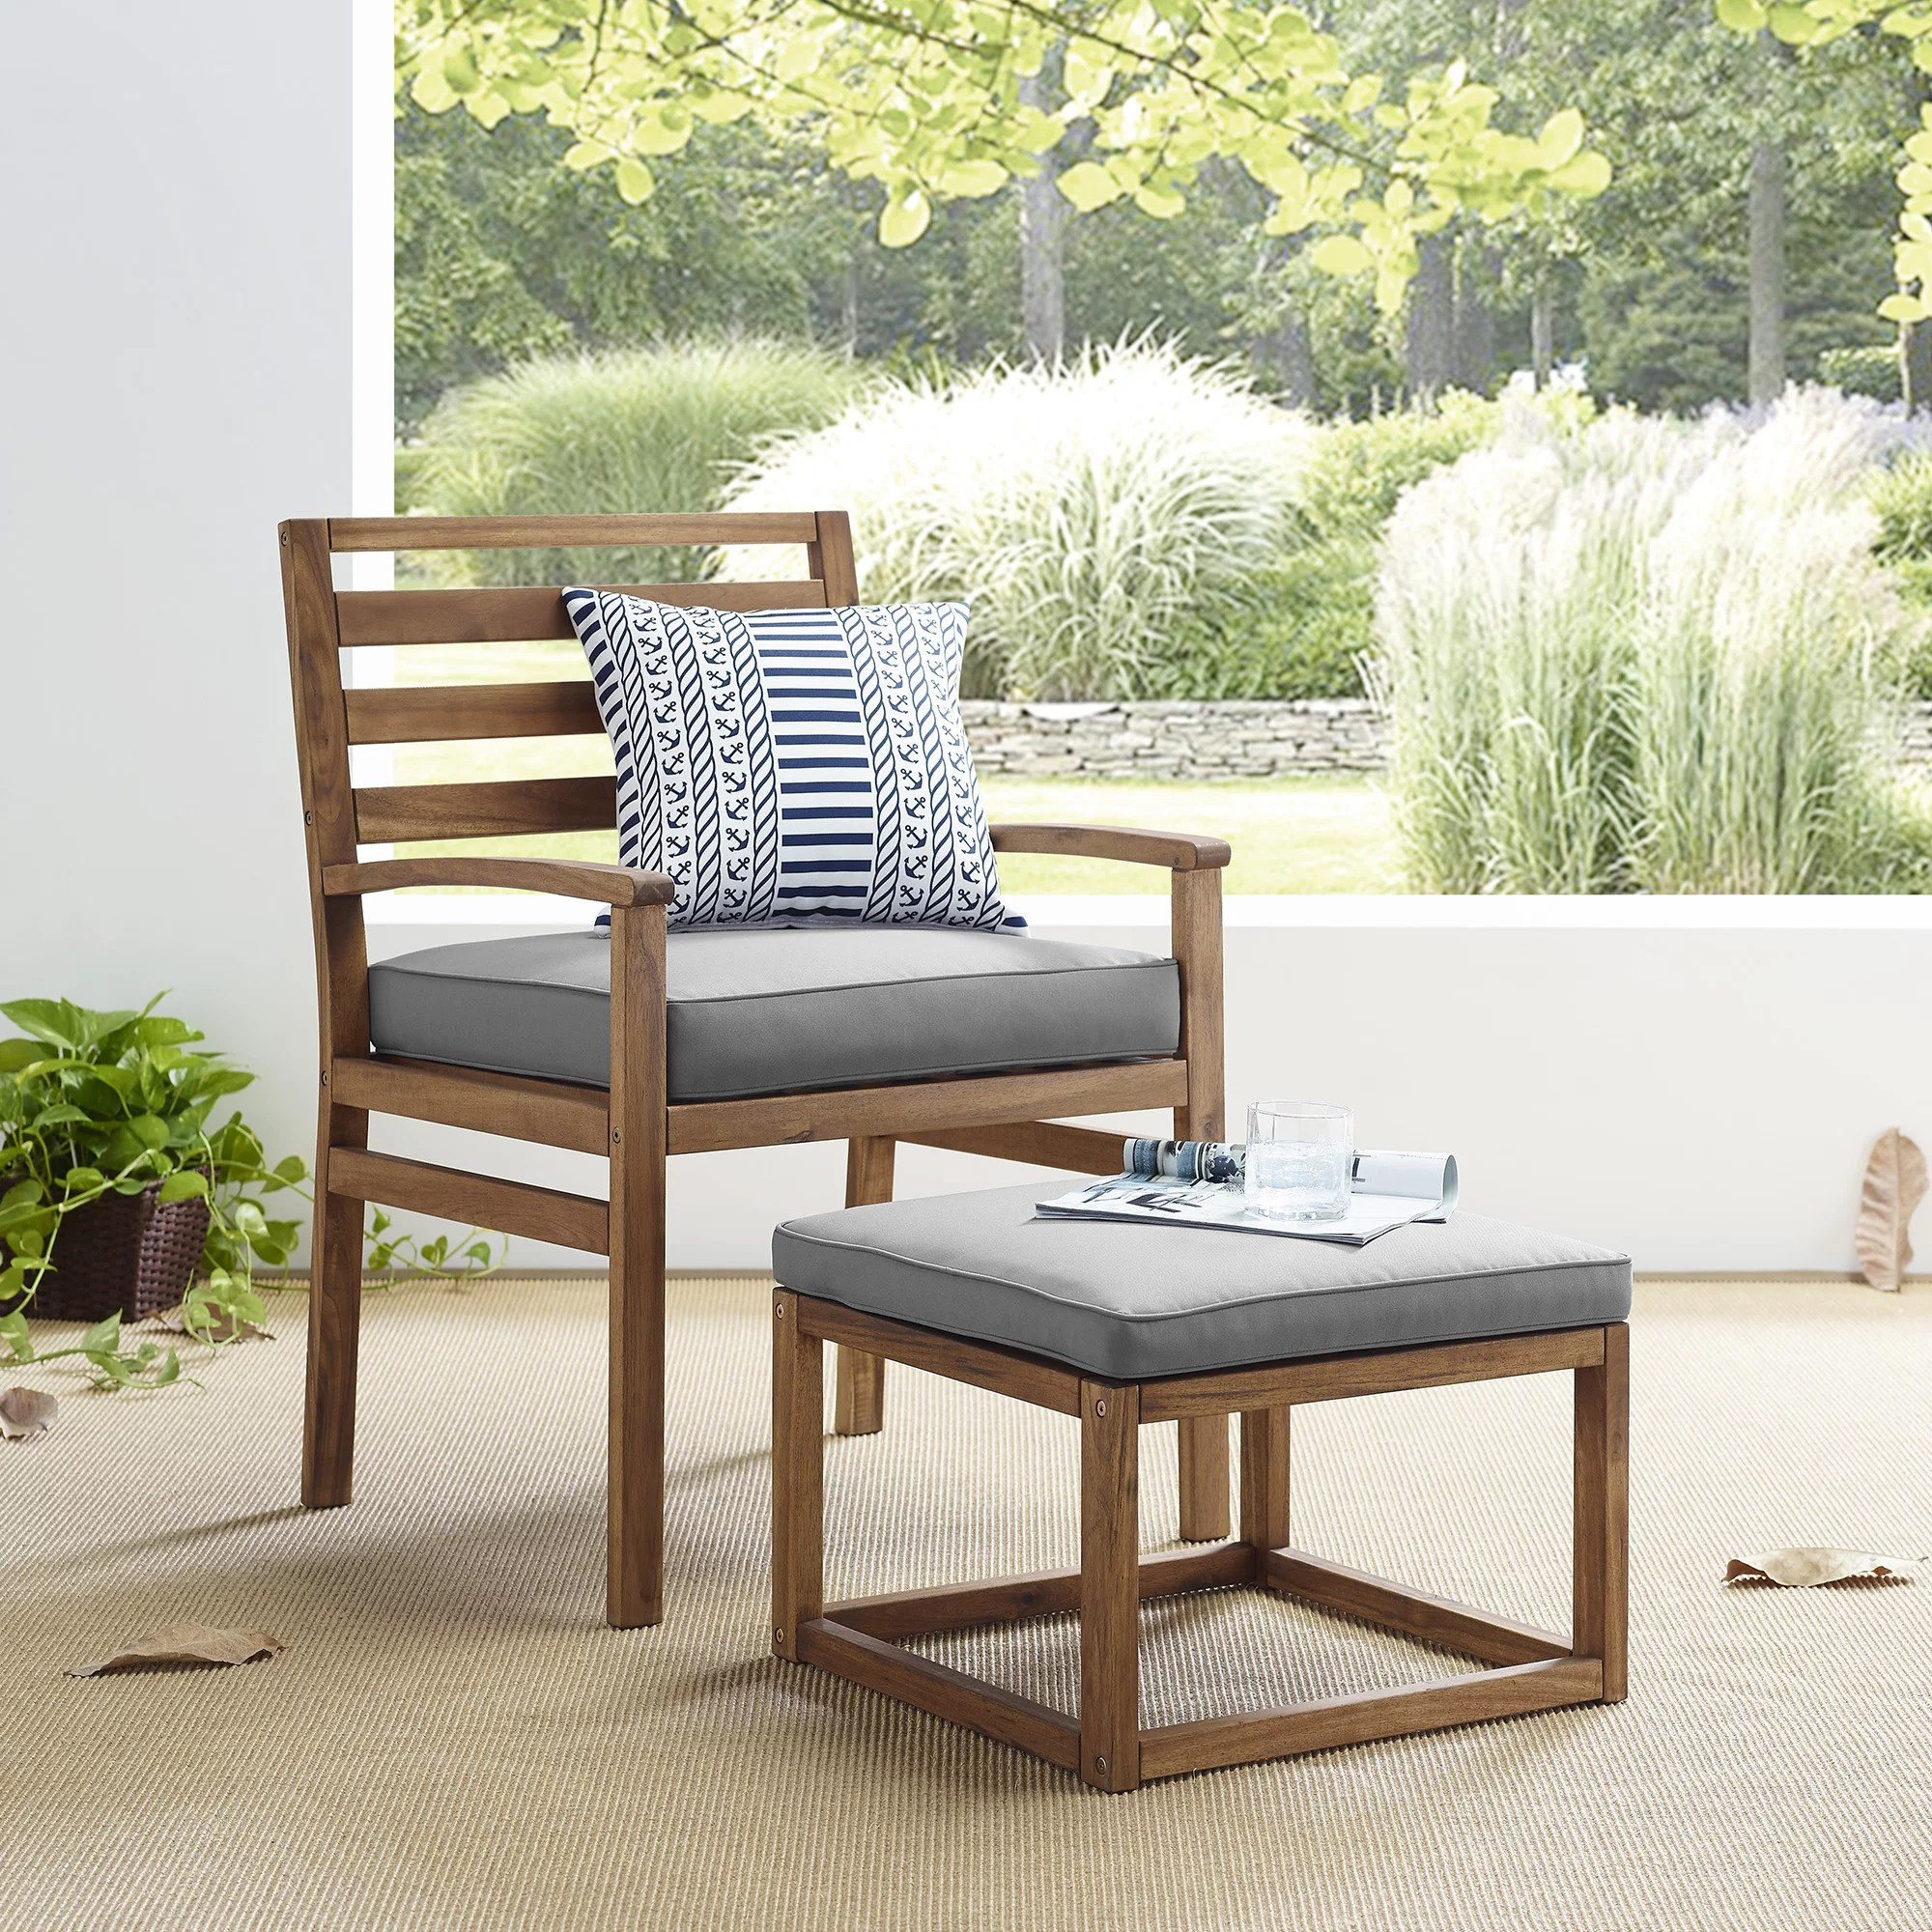 manor park acacia wood outdoor patio chair pull out ottoman brown grey walmart com